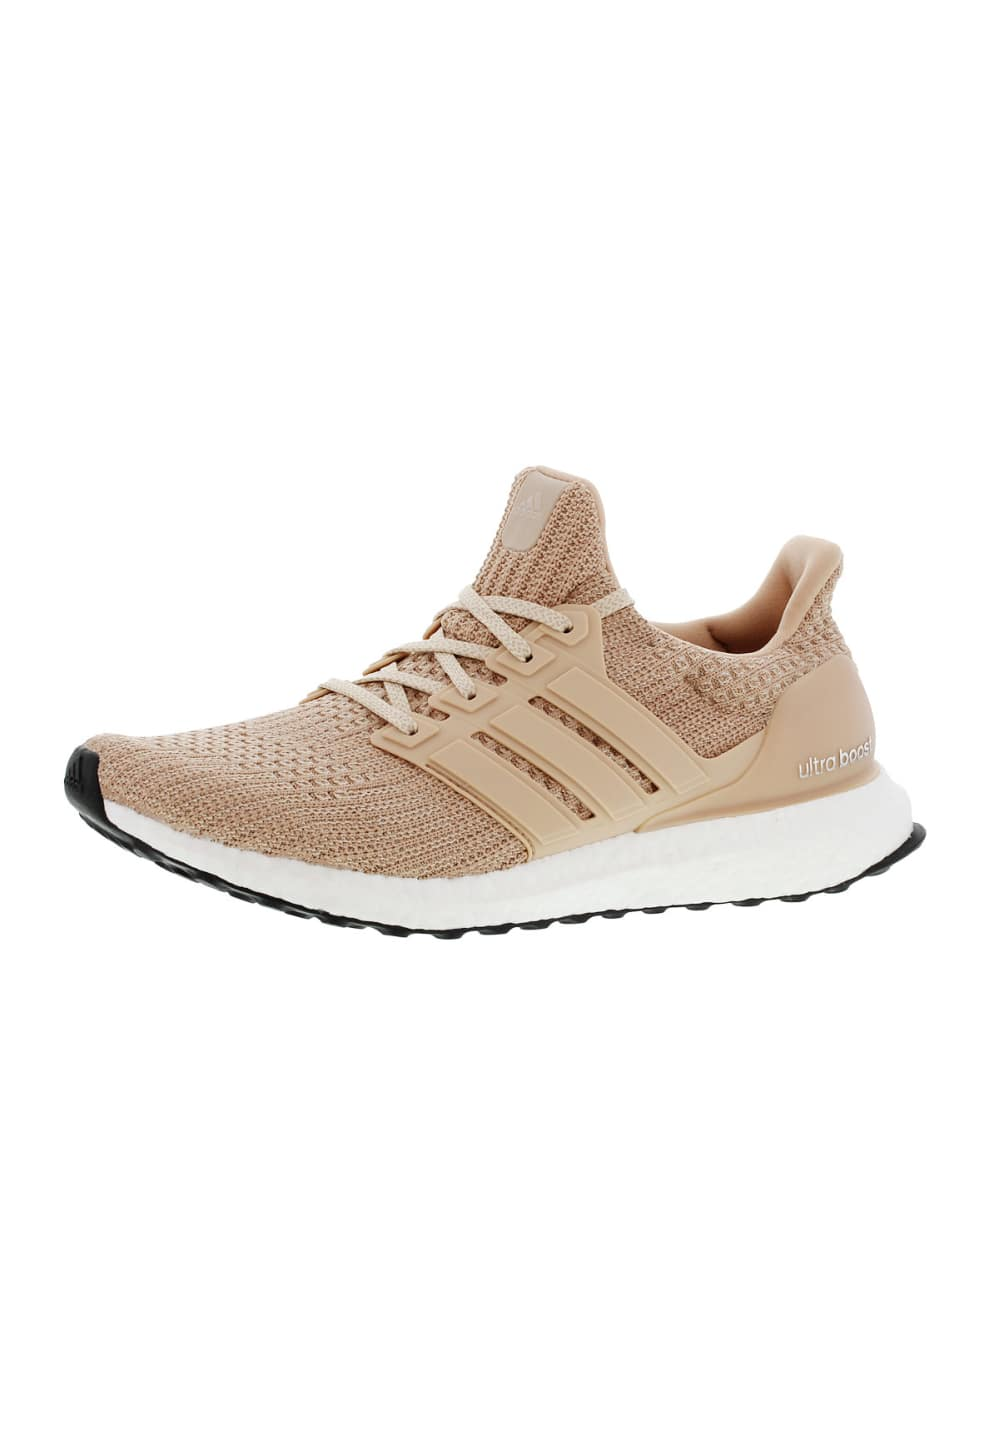 detailed look 3a0c3 53740 adidas Ultra Boost - Running shoes for Women - Beige   21RUN